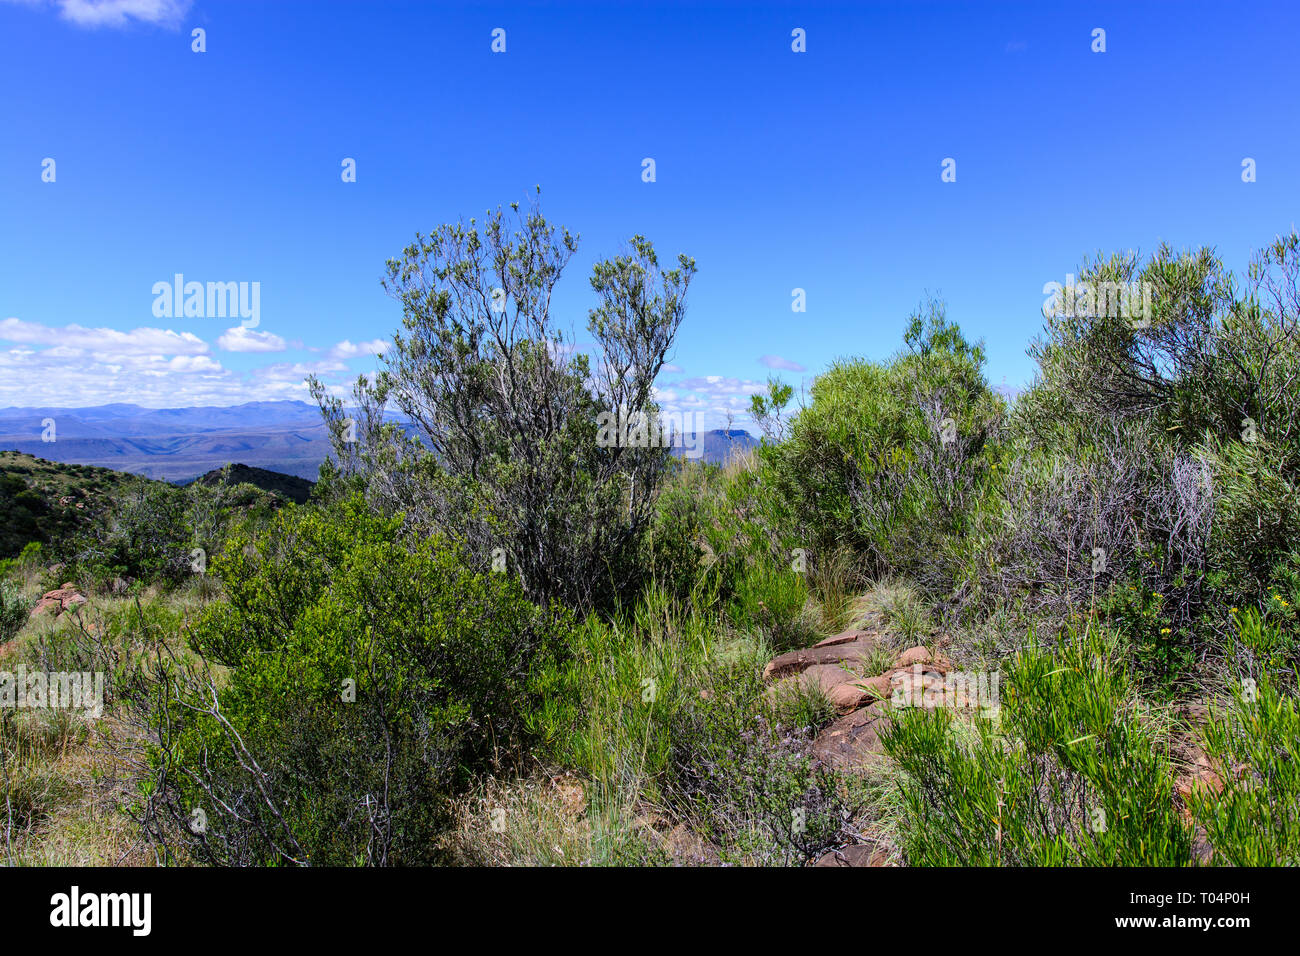 South Africa,Graaff-Reinet,Valley of Desolation,Karoo,Camdeboo, outdoor nature landscape panorama,blue sky,clouds, mountains on the horizon - Stock Image